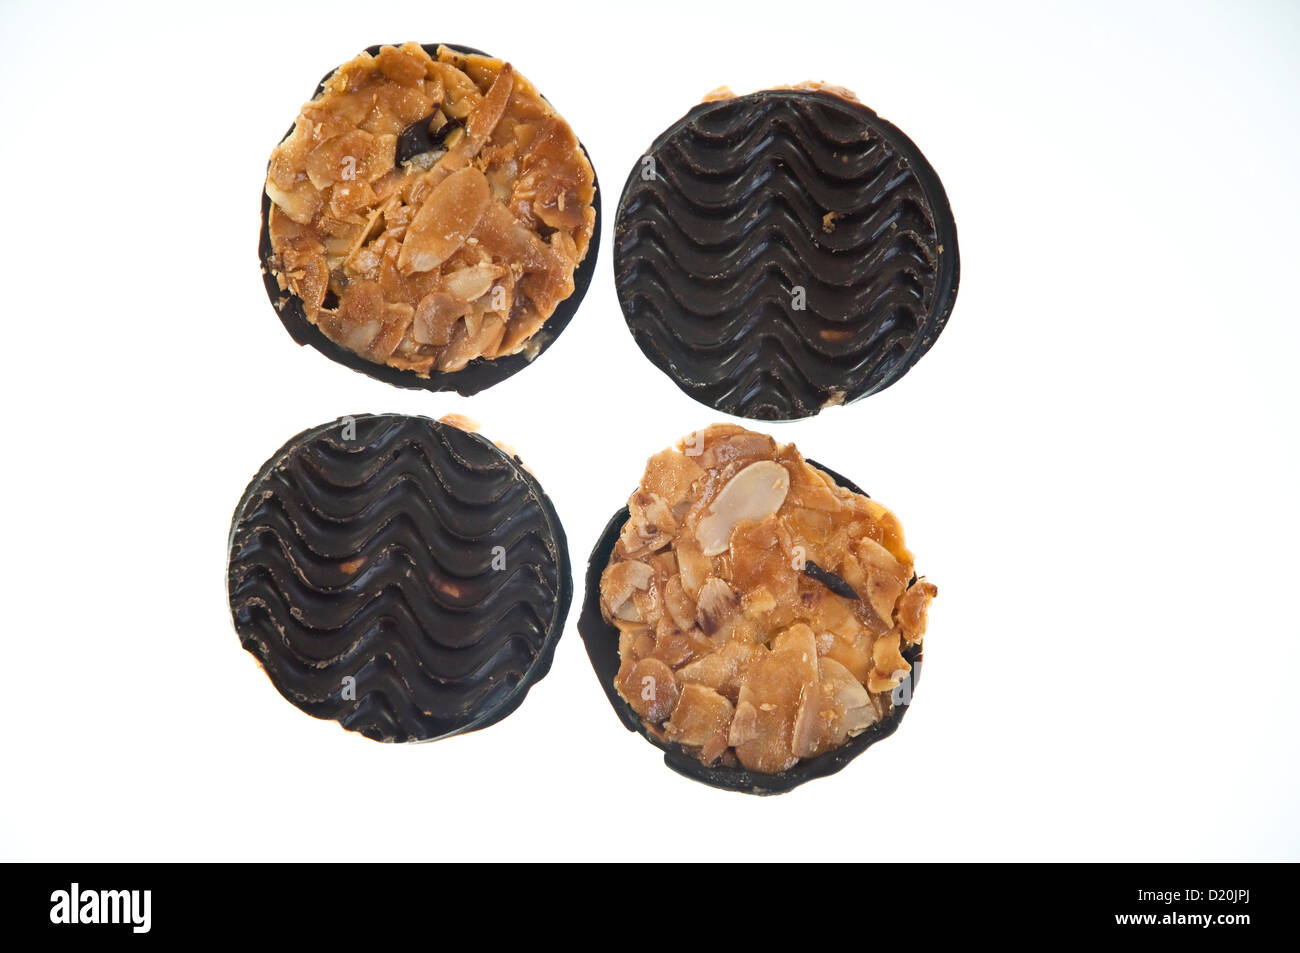 Florentine Biscuits - Belgian dark chocolate base with almond topping. - Stock Image